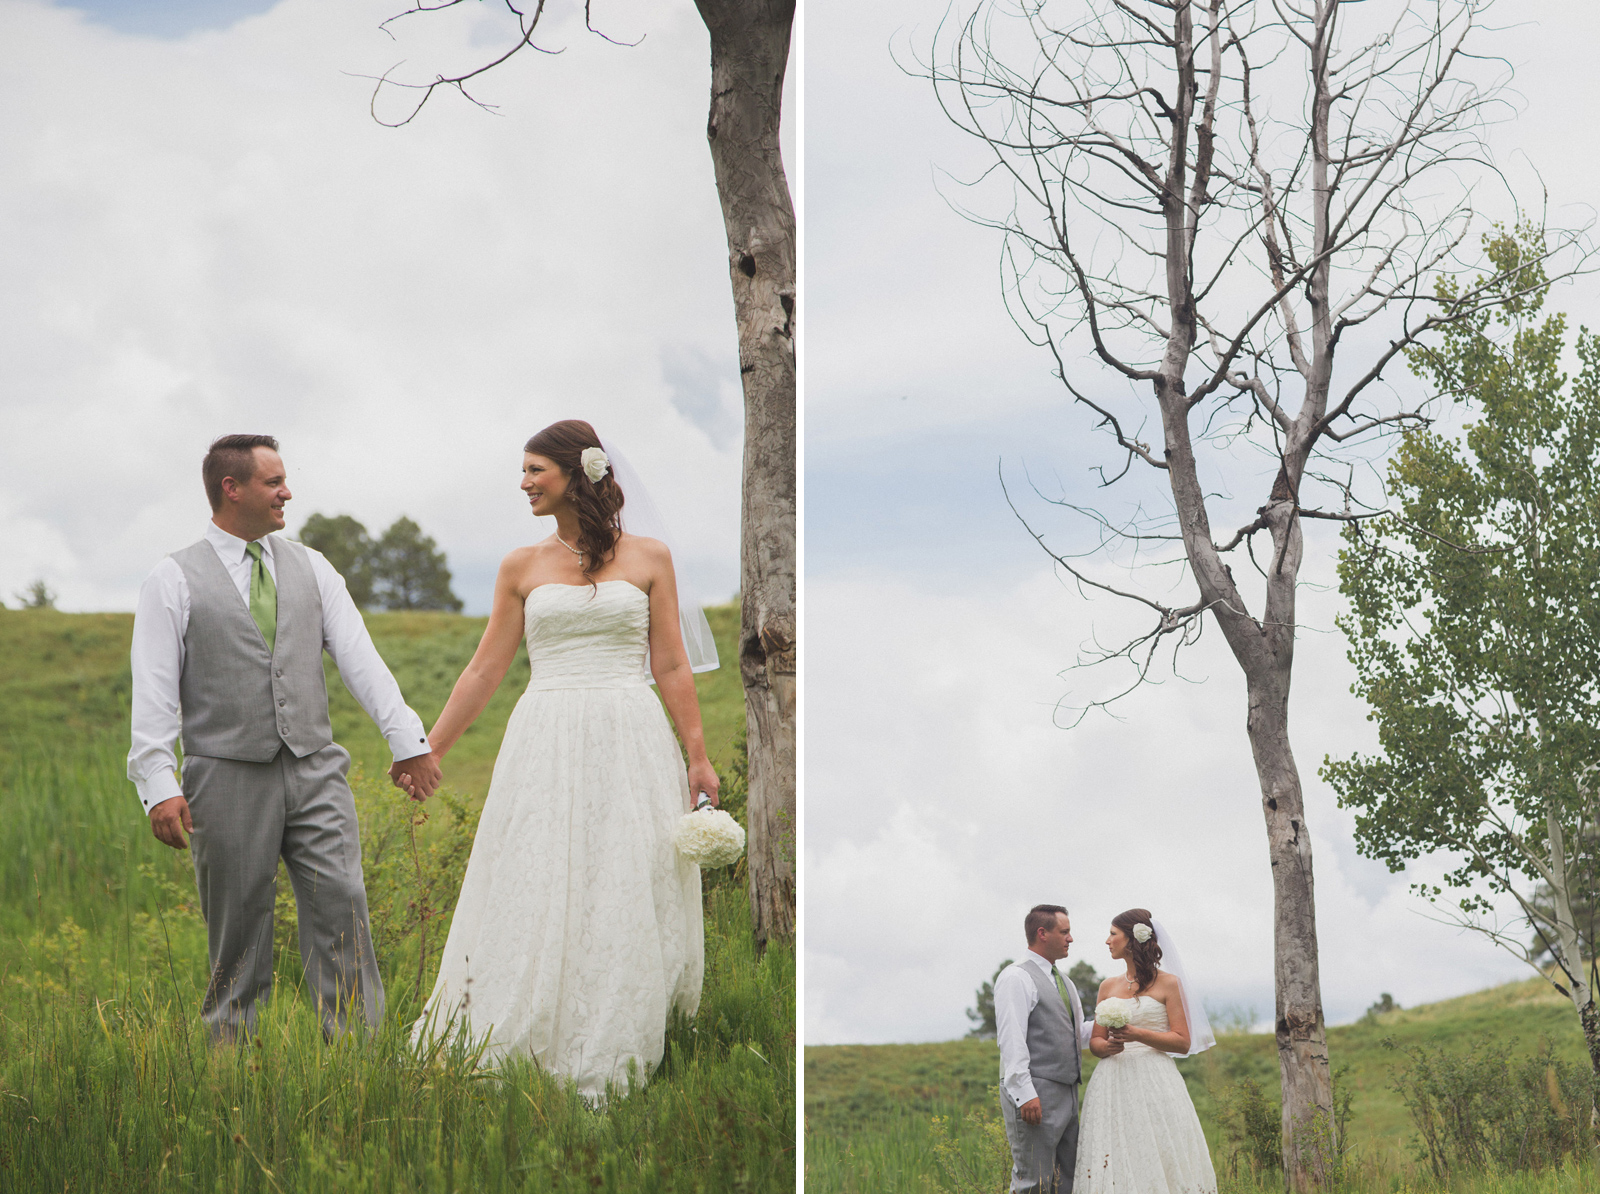 lake trees groom bride wedding cabin woods forest pictures photos dress photography portraits first look firstlook reveal happy farmington aztec durango mancos co nm